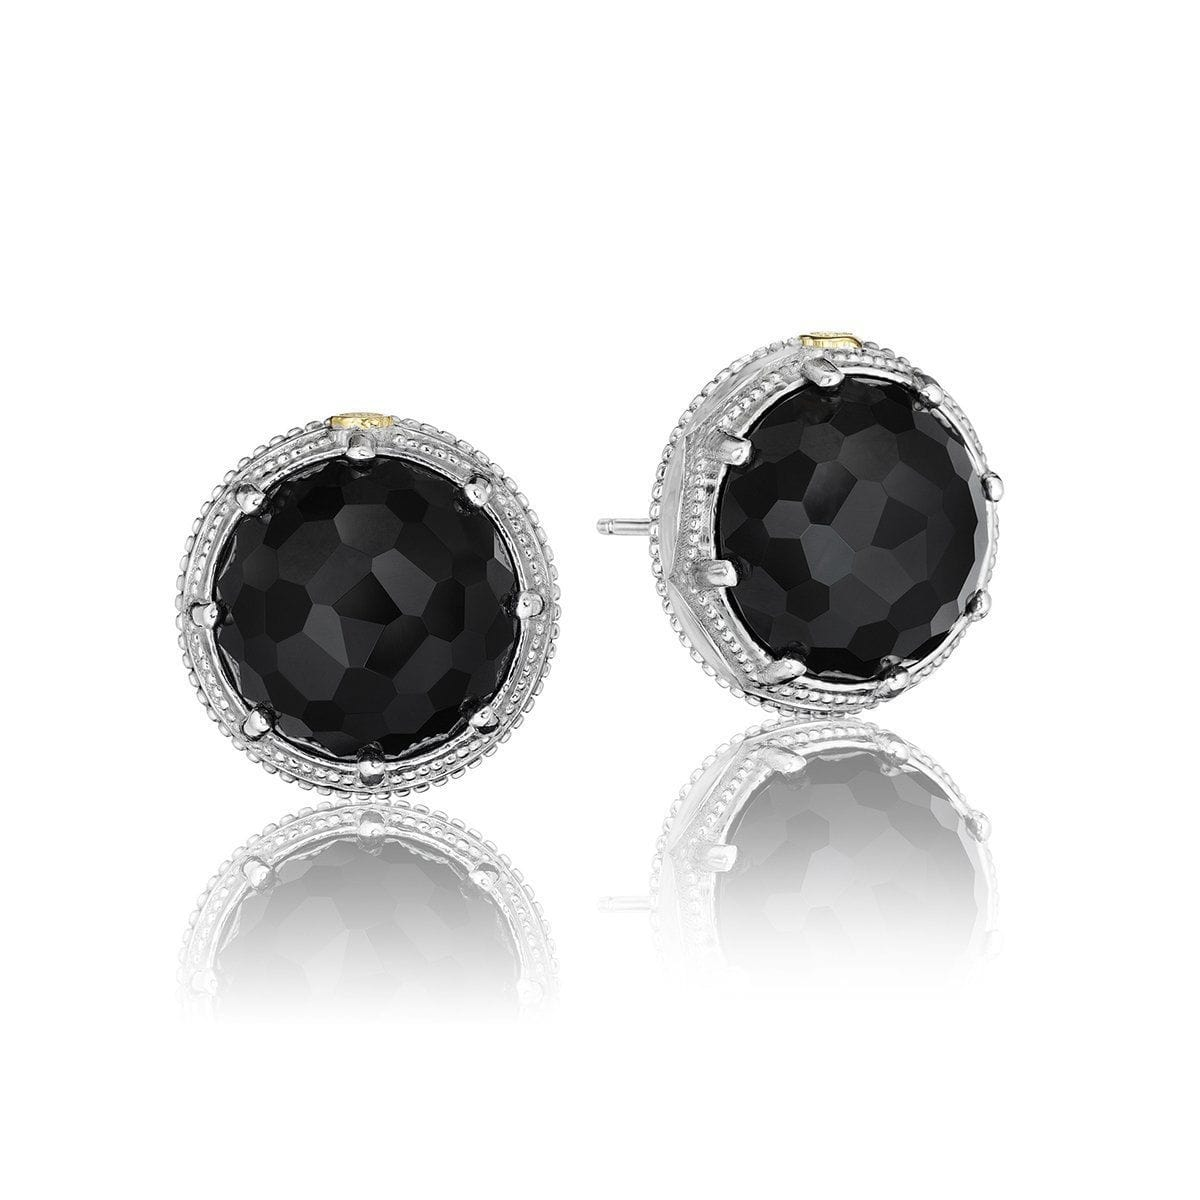 Silver Black Onyx Earrings - SE17119-Tacori-Renee Taylor Gallery